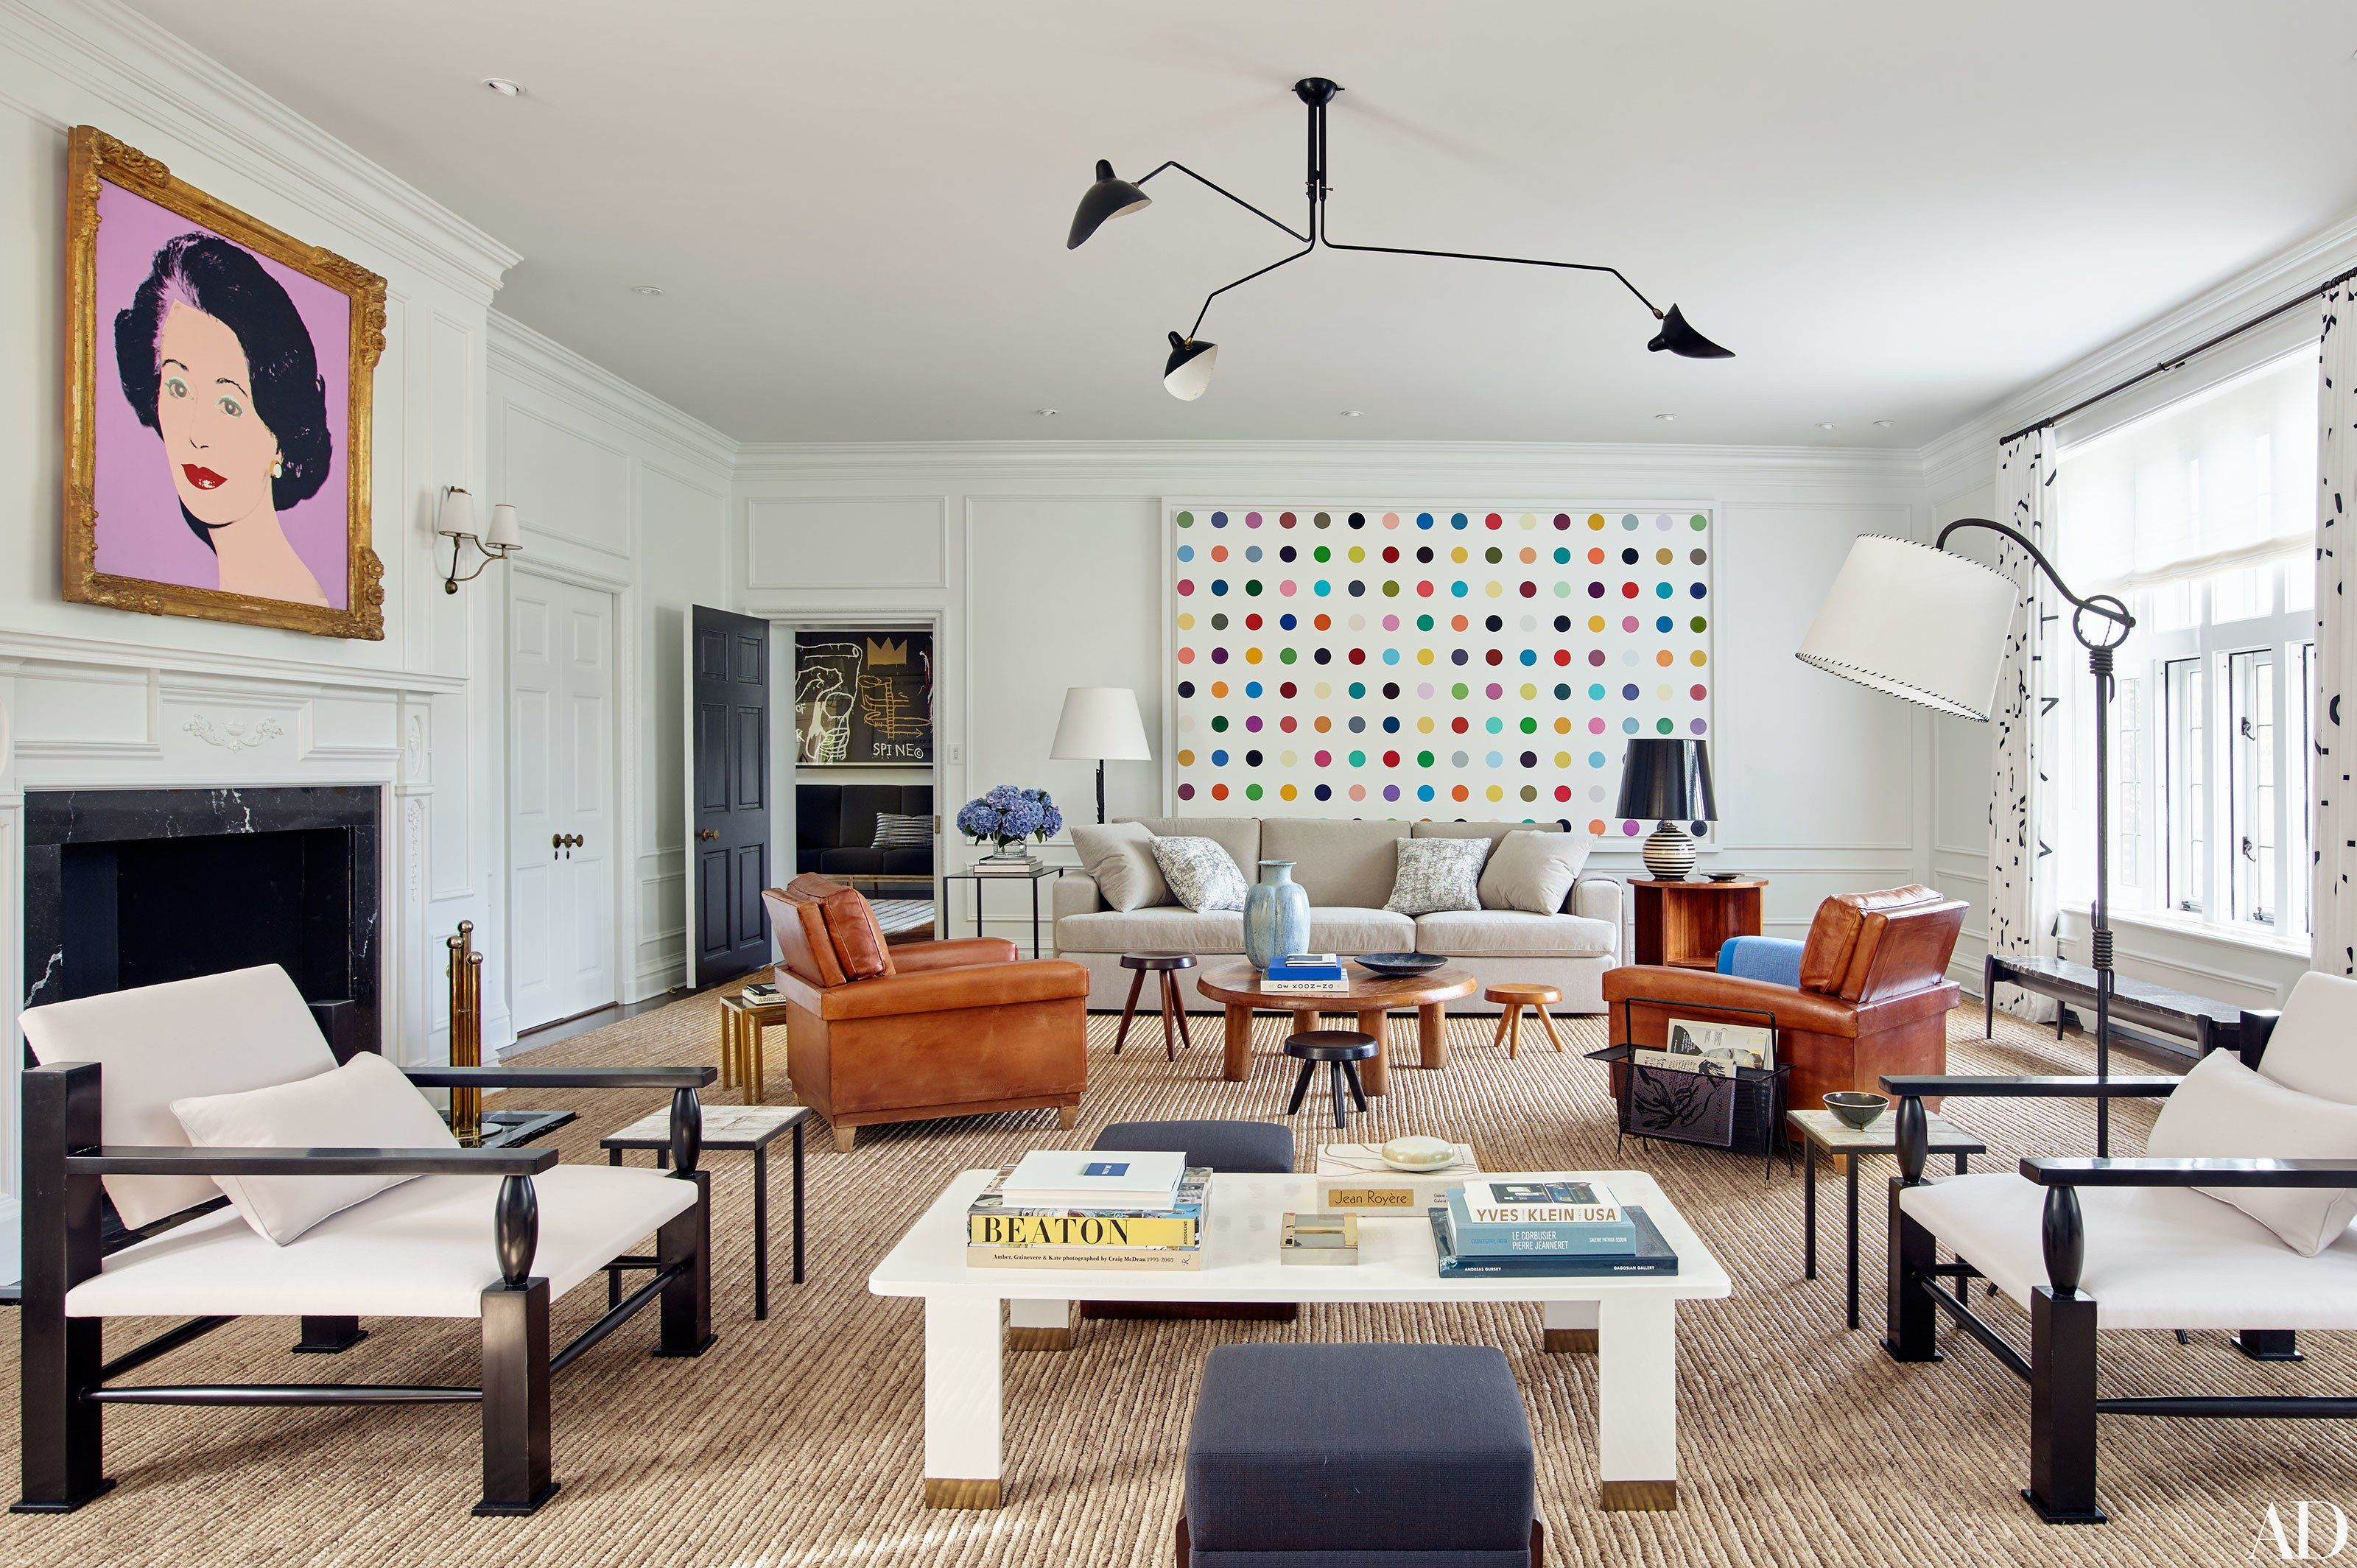 manhattan interiors drew aaron and hana soukupova s manhattan apartment Architectural Digest just featured an ultra-chic home designed by Mark  Cunningham for model Hana Soukupova and her husband, entrepreneur Drew Aaron .